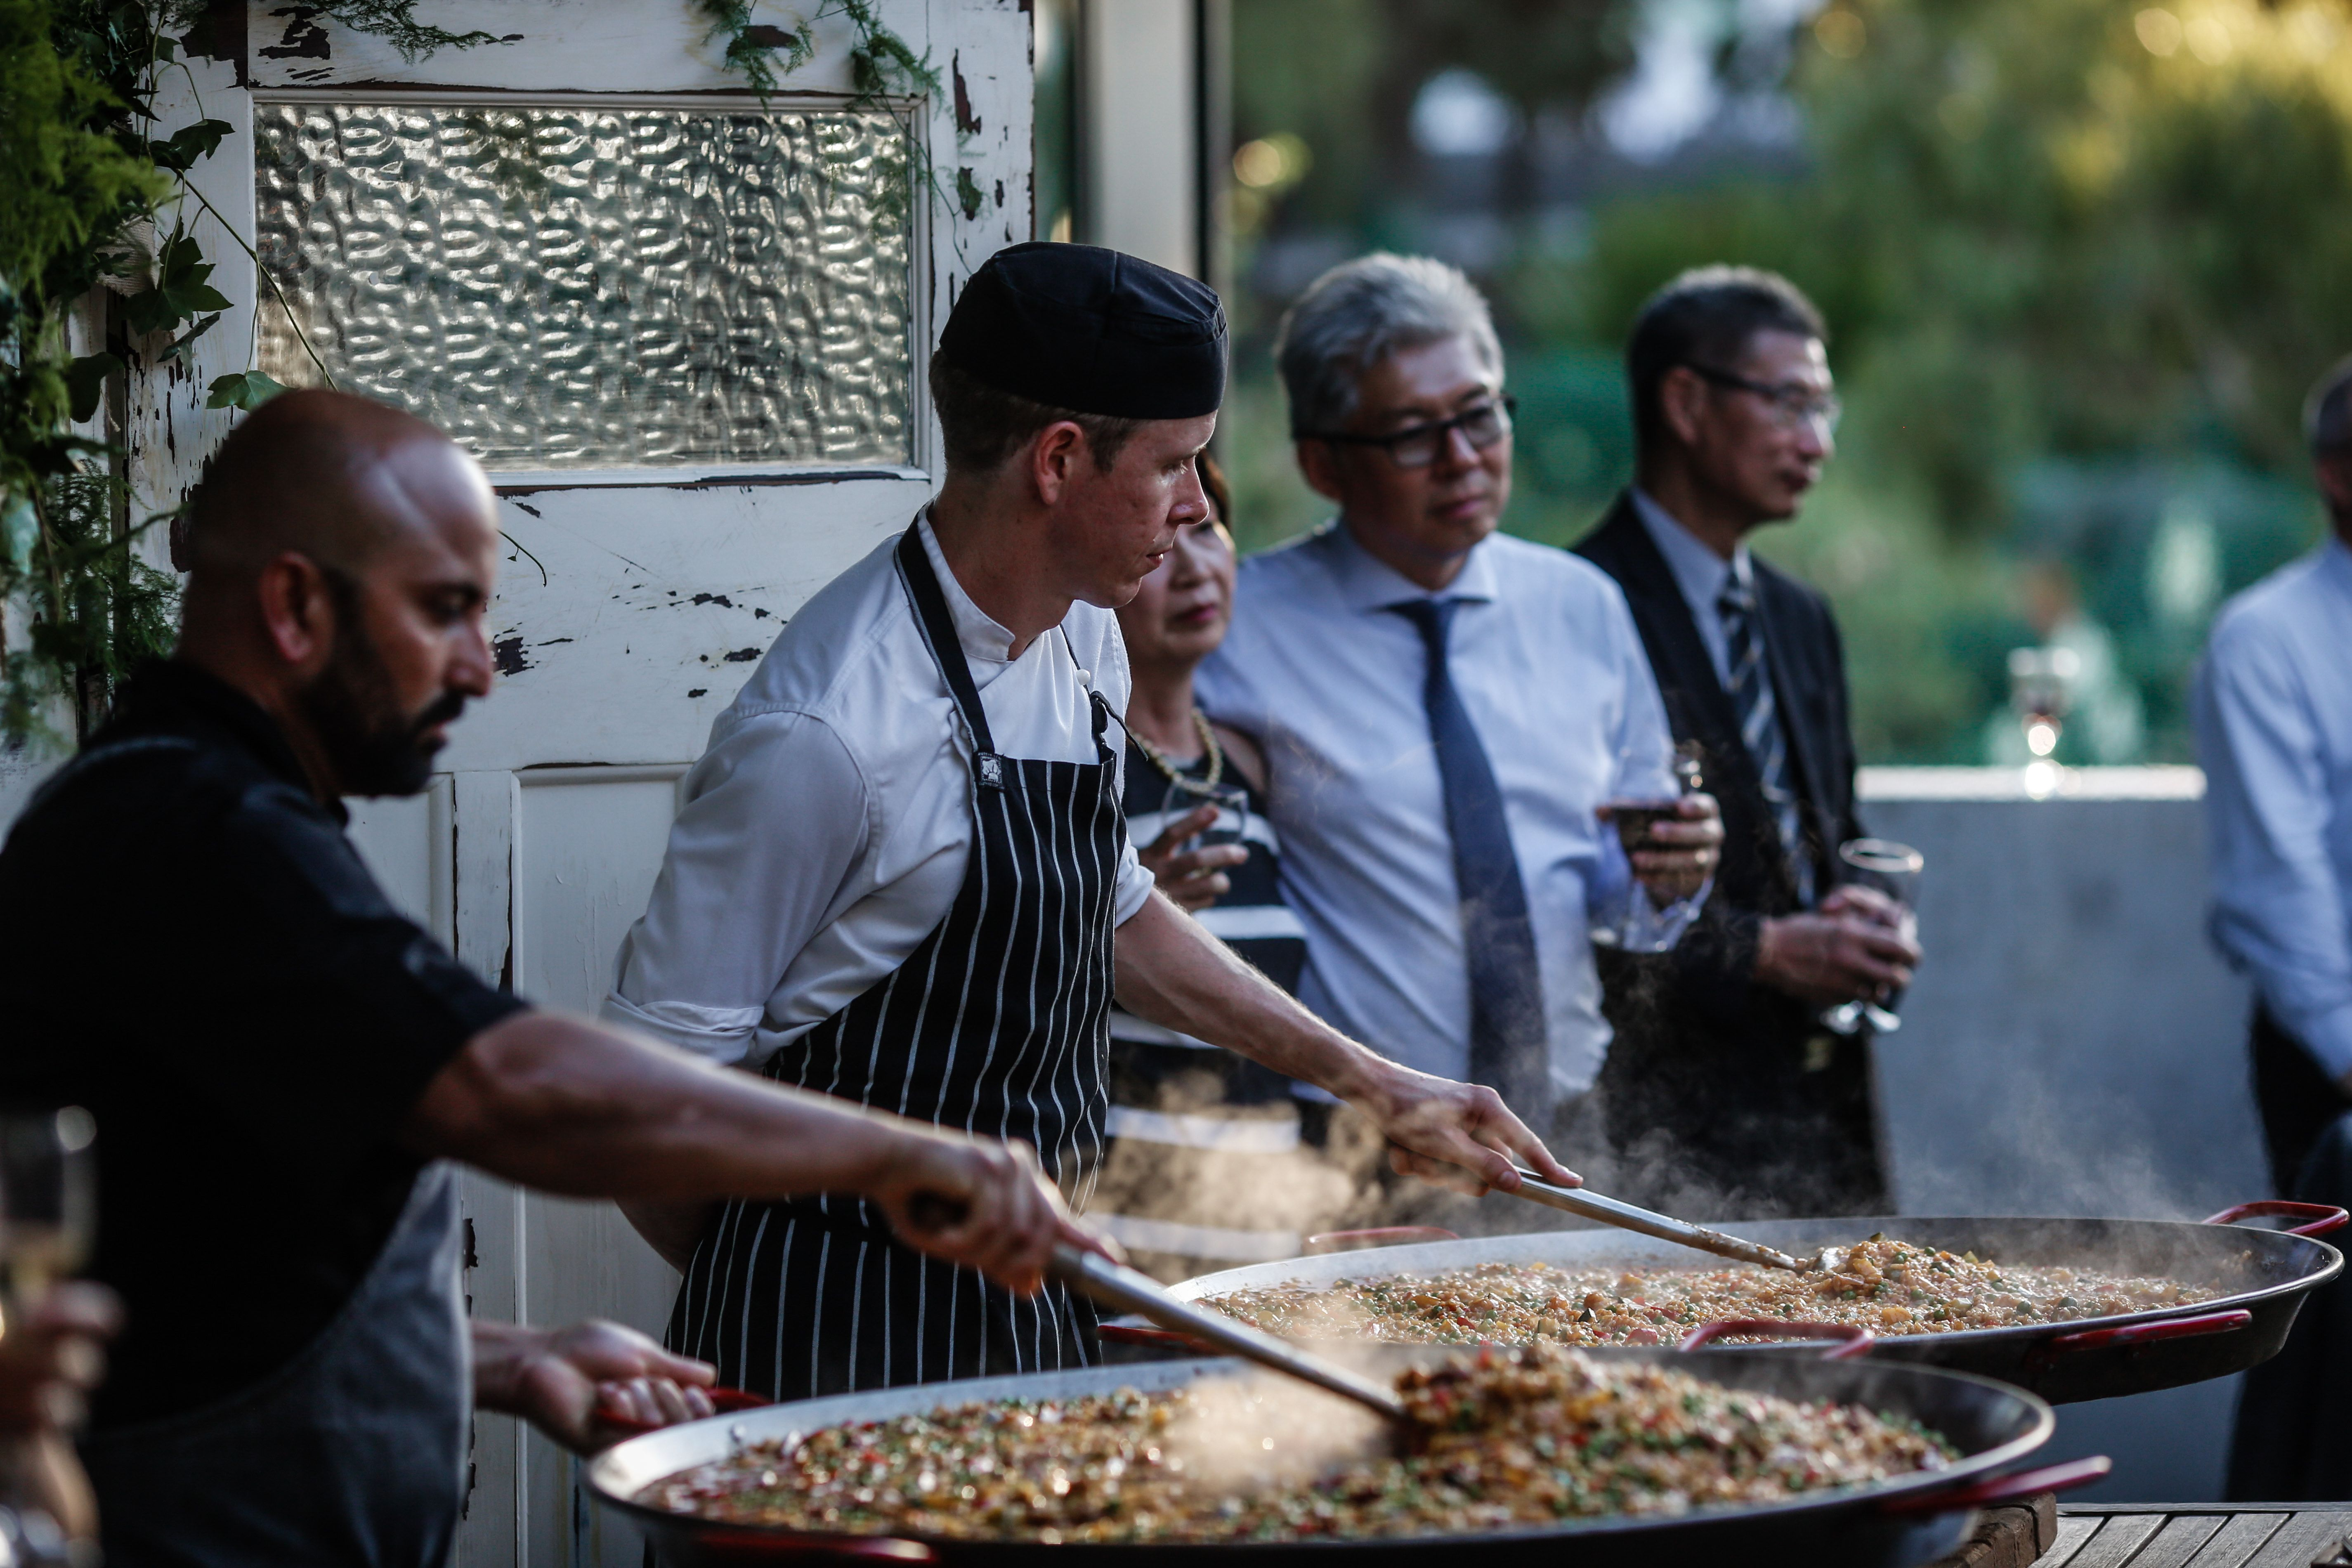 Cnk Catering Chefs Cooking Paella On The Richmond Rowing